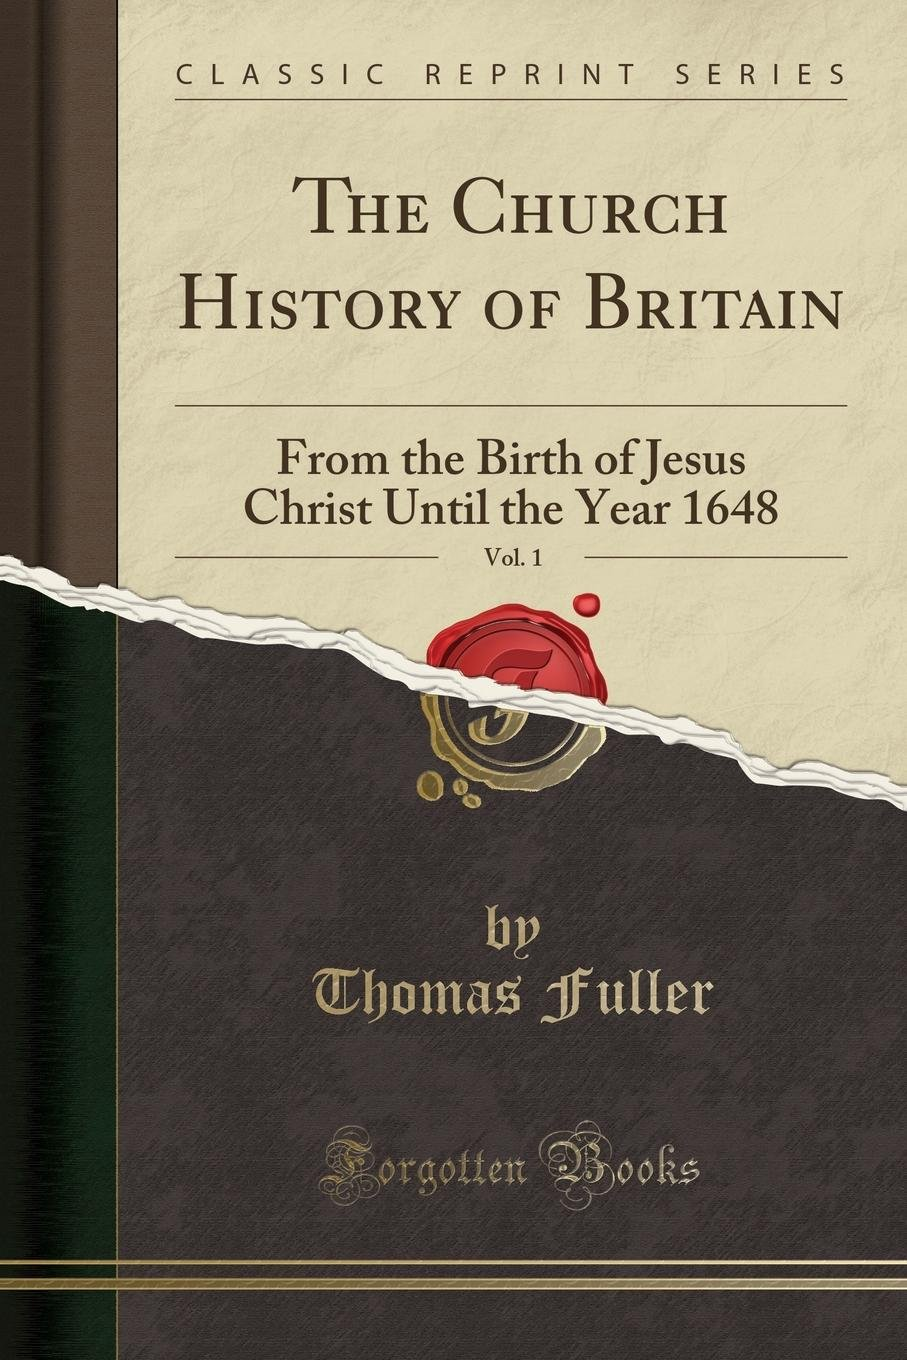 Download The Church History of Britain, Vol. 1: From the Birth of Jesus Christ Until the Year 1648 (Classic Reprint) PDF